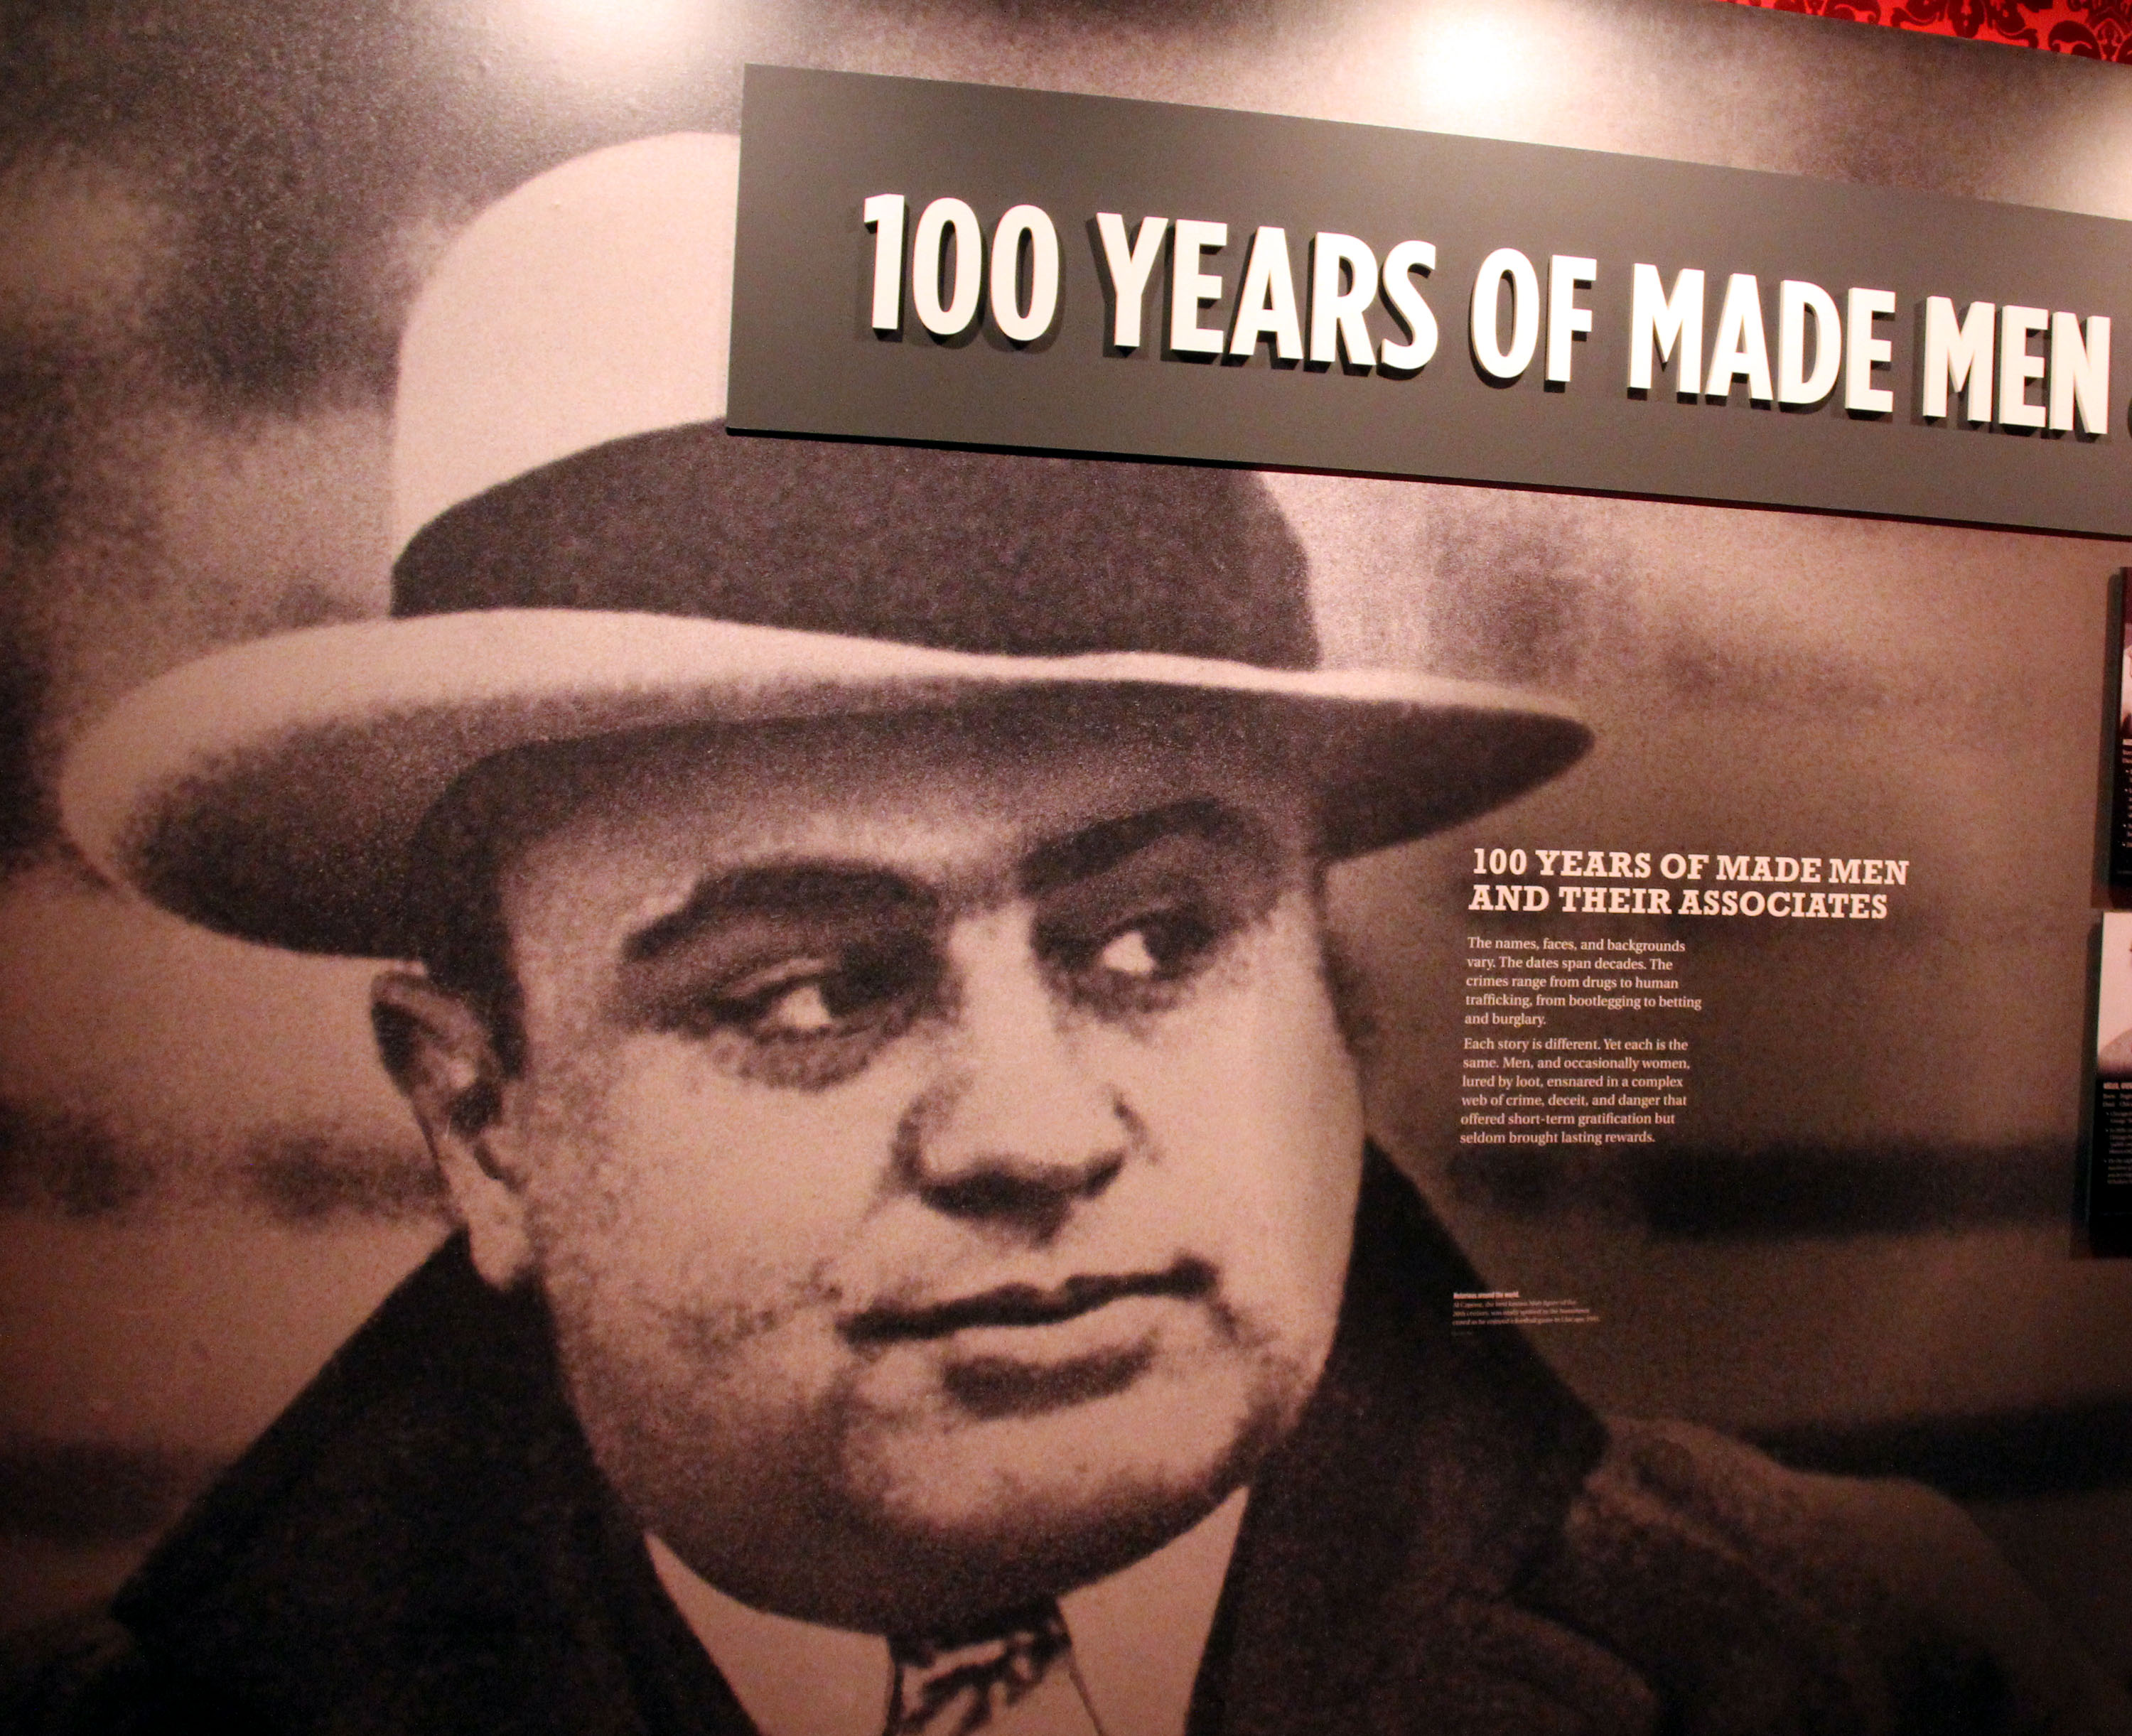 thesis paper on al capone Al capone essays: over 180,000 al capone essays, al capone term papers, al capone research paper, book reports 184 990 essays, term and research papers available for unlimited access.